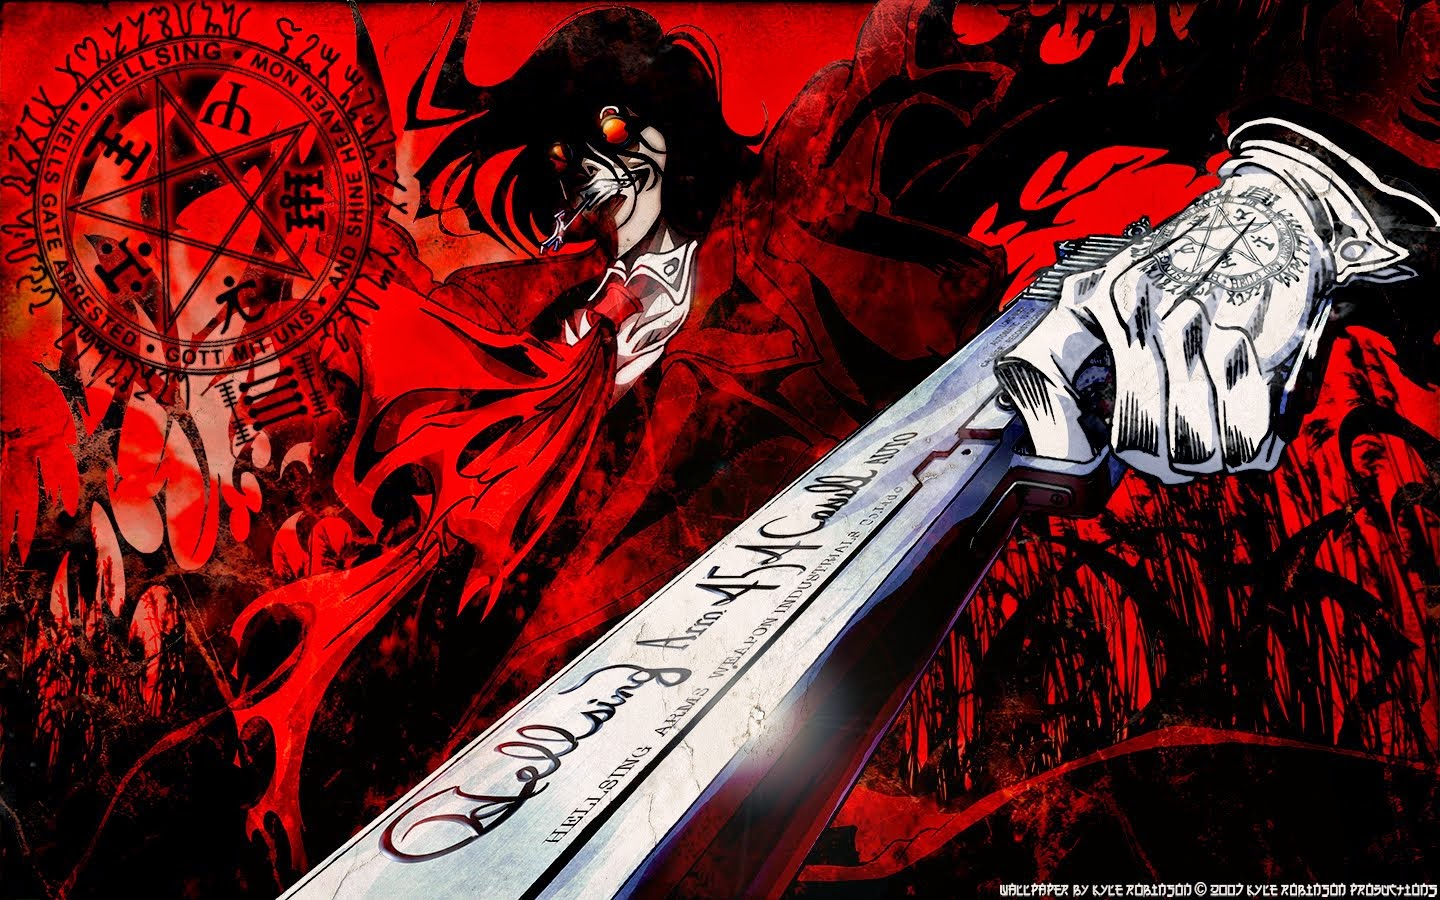 Hellsing Wallpaper Hellsing Wallpaper Black White And Red Anime Wallpapers Daeya